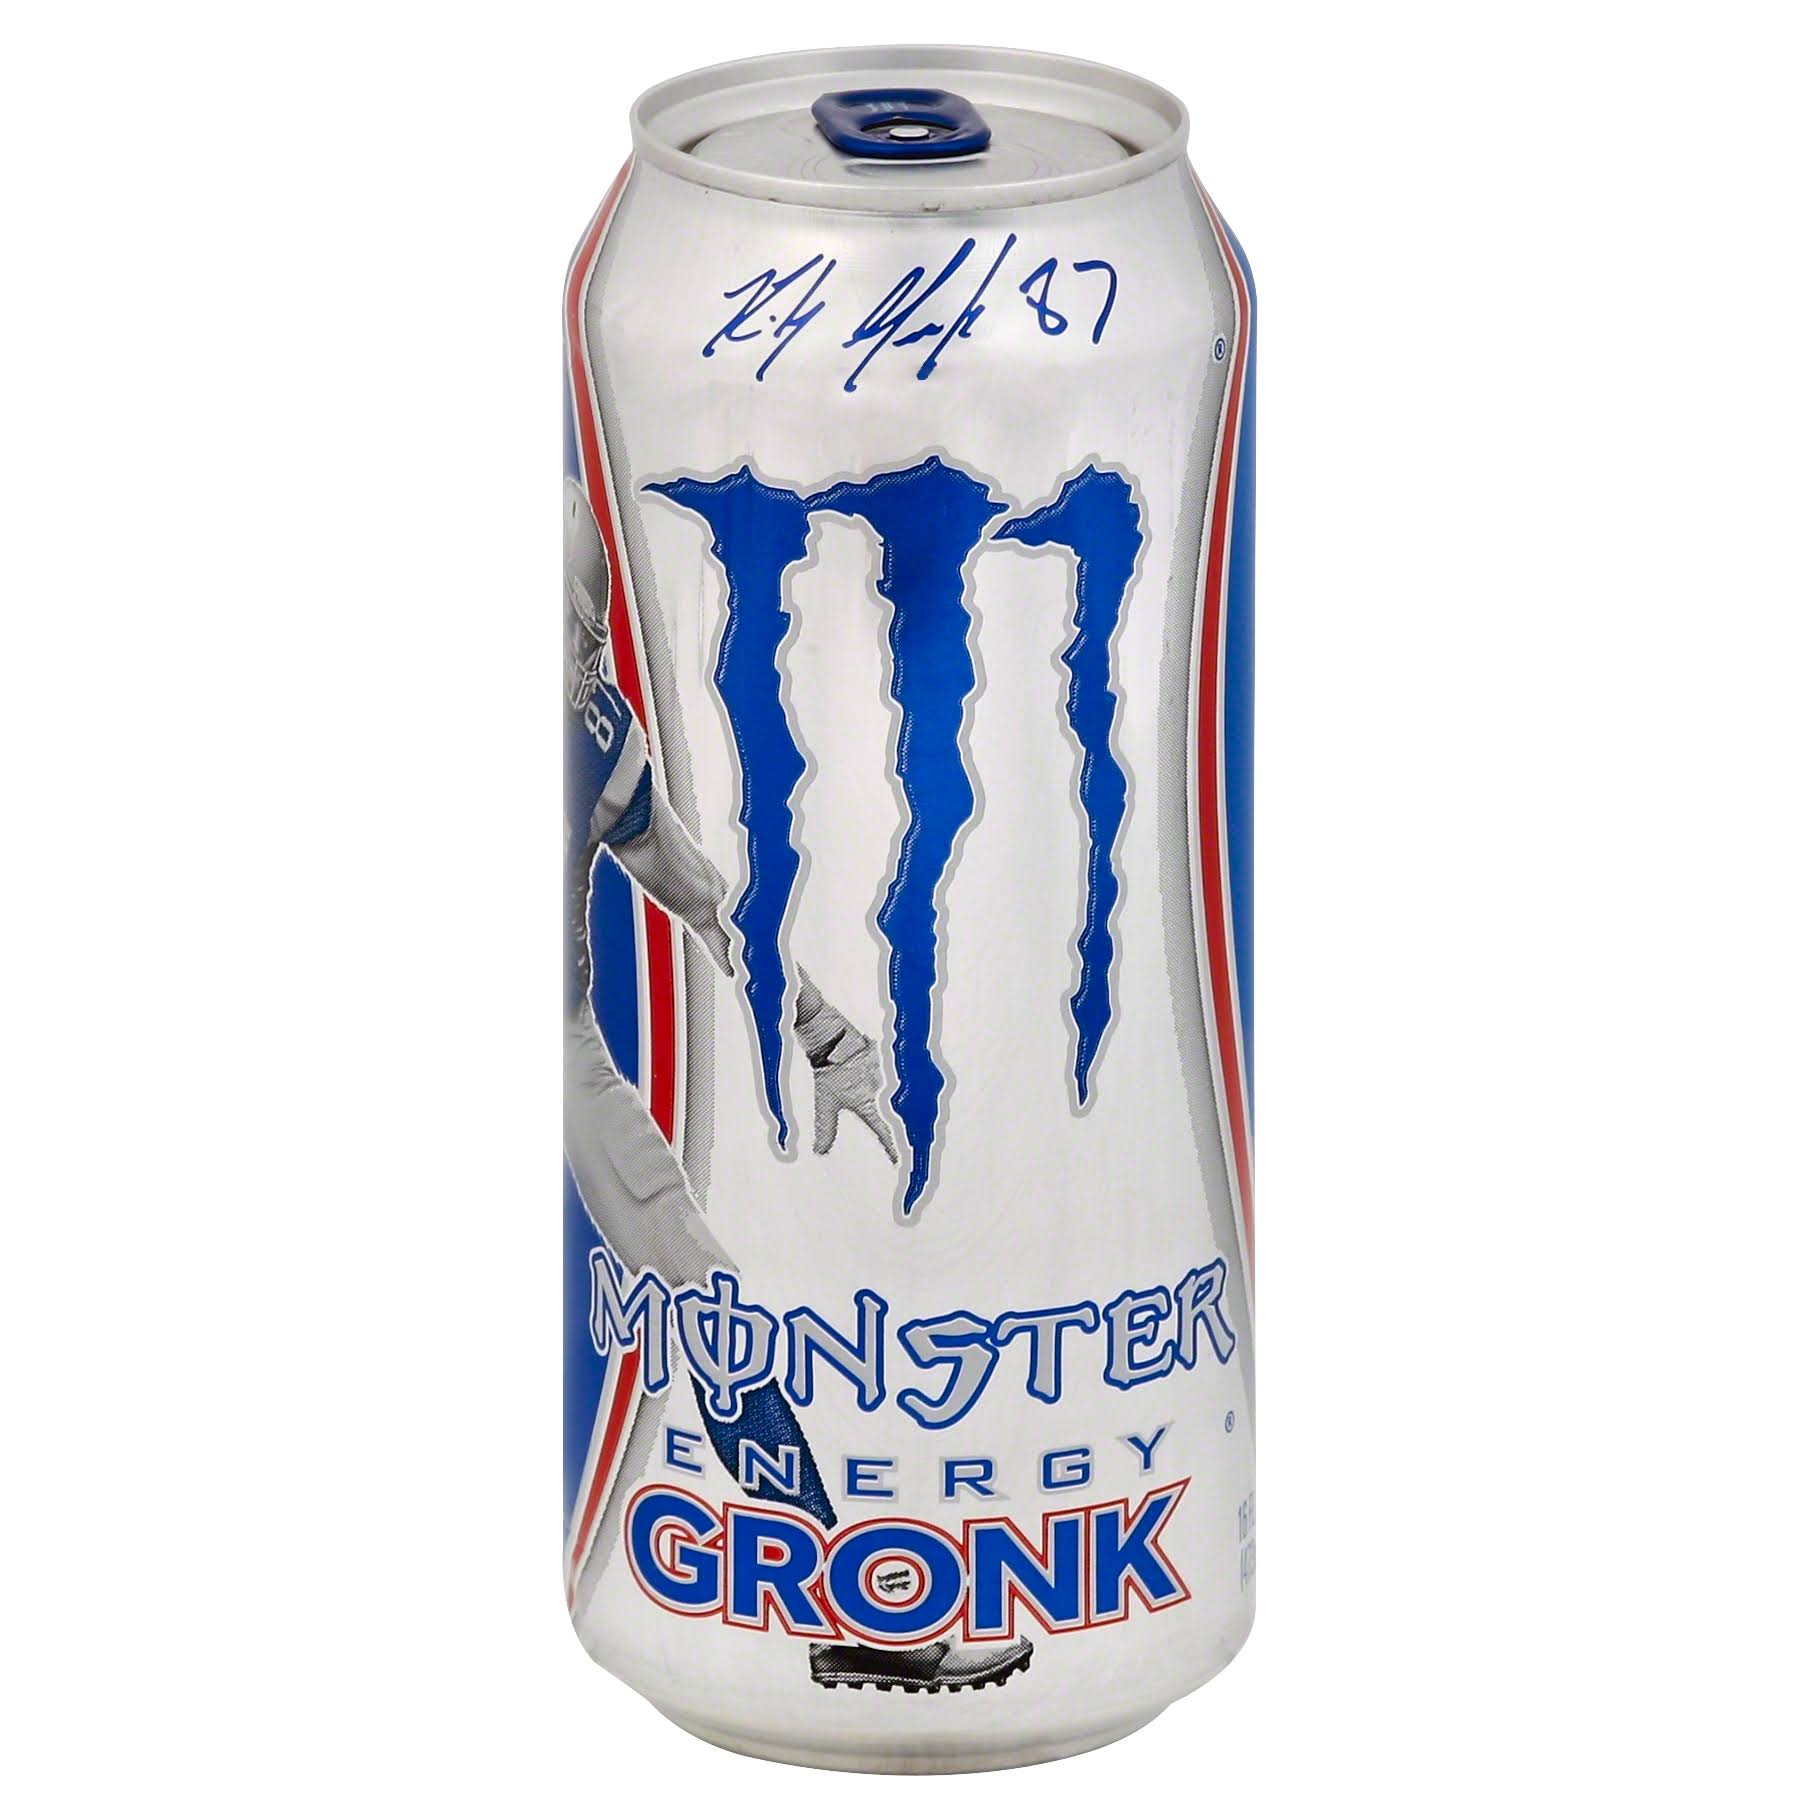 Monster Energy Gronk - 16oz, 16 Pack